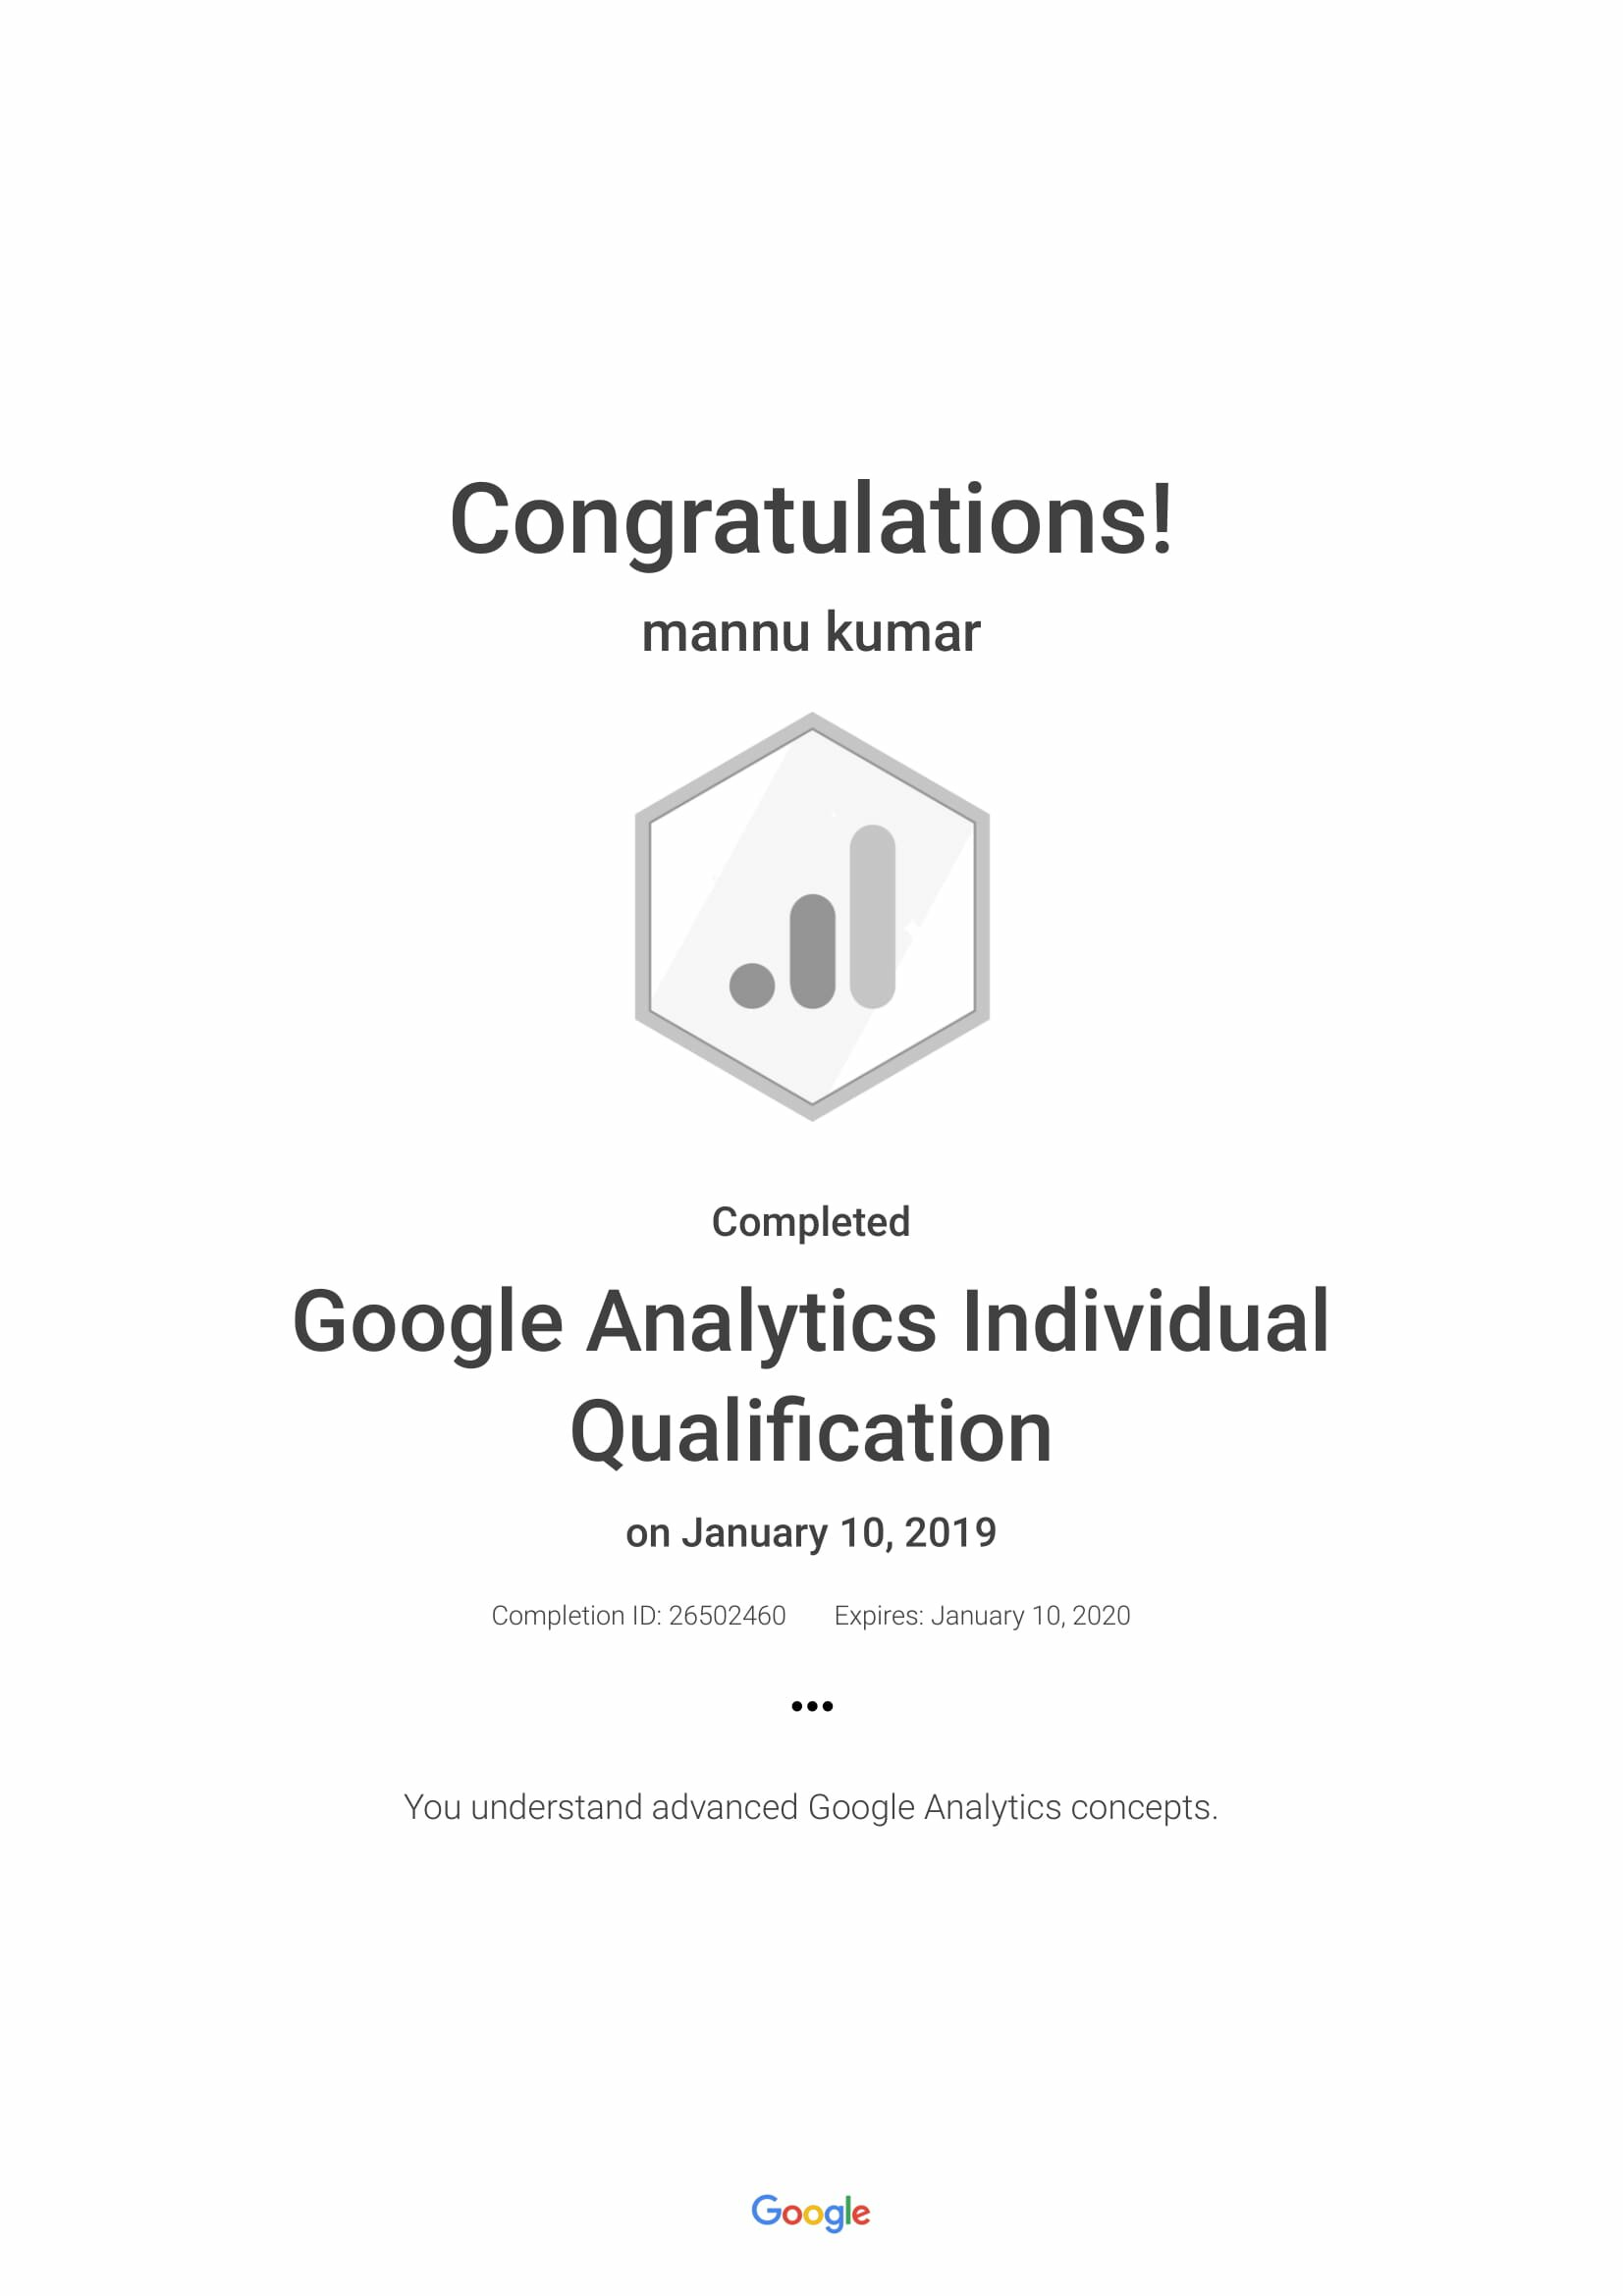 Google Analytics Individual Qualification Certification